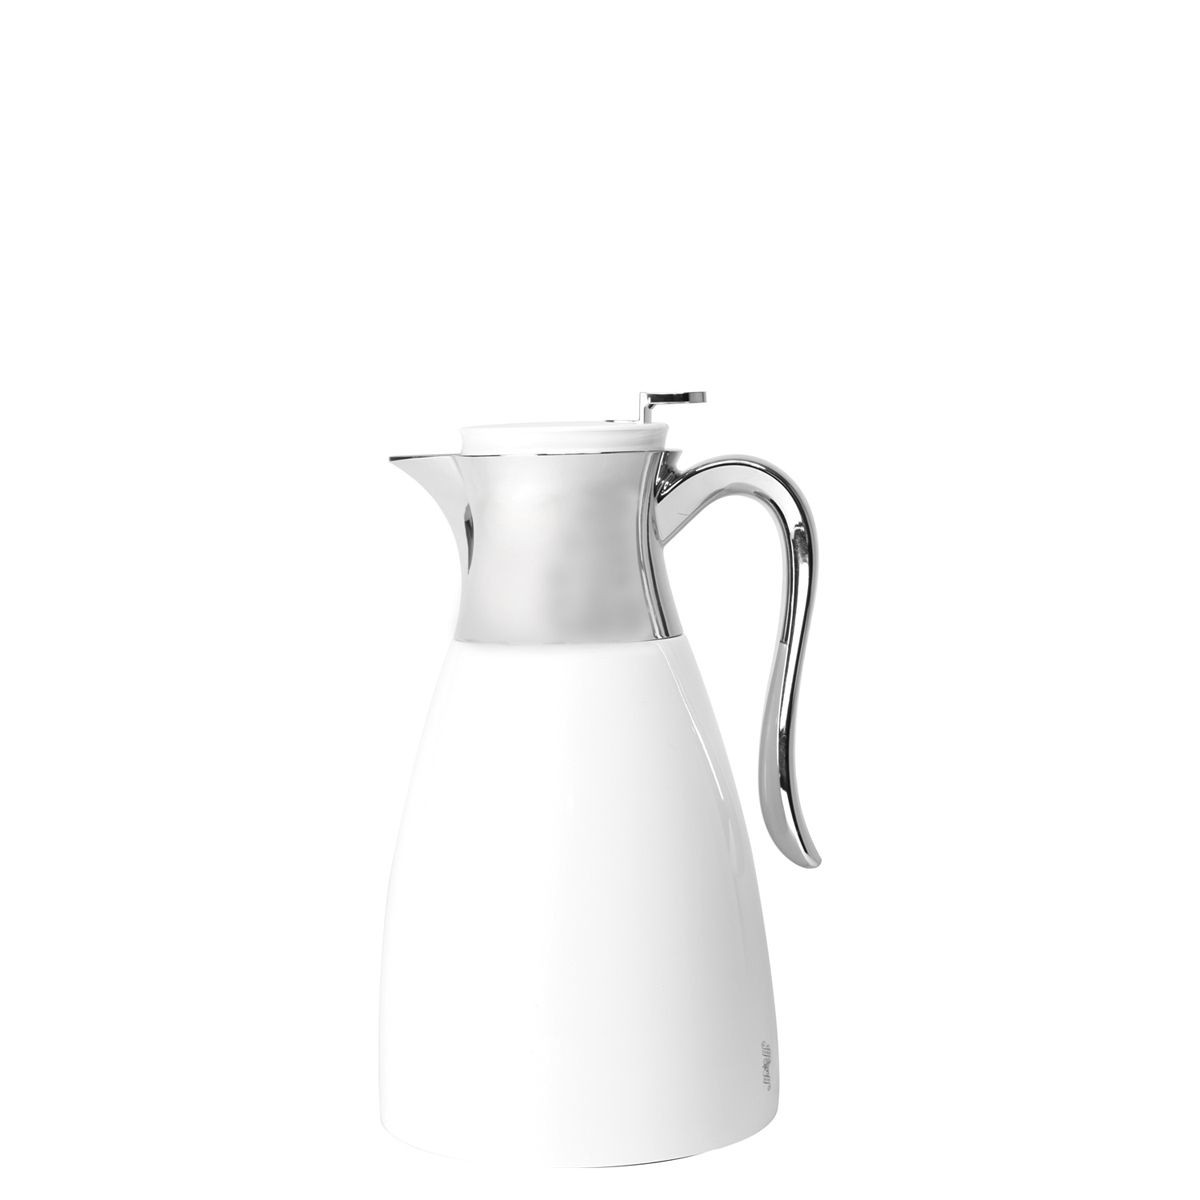 Service Ideas WES15WH Elegant White / Chrome Server, 1.5 Liter